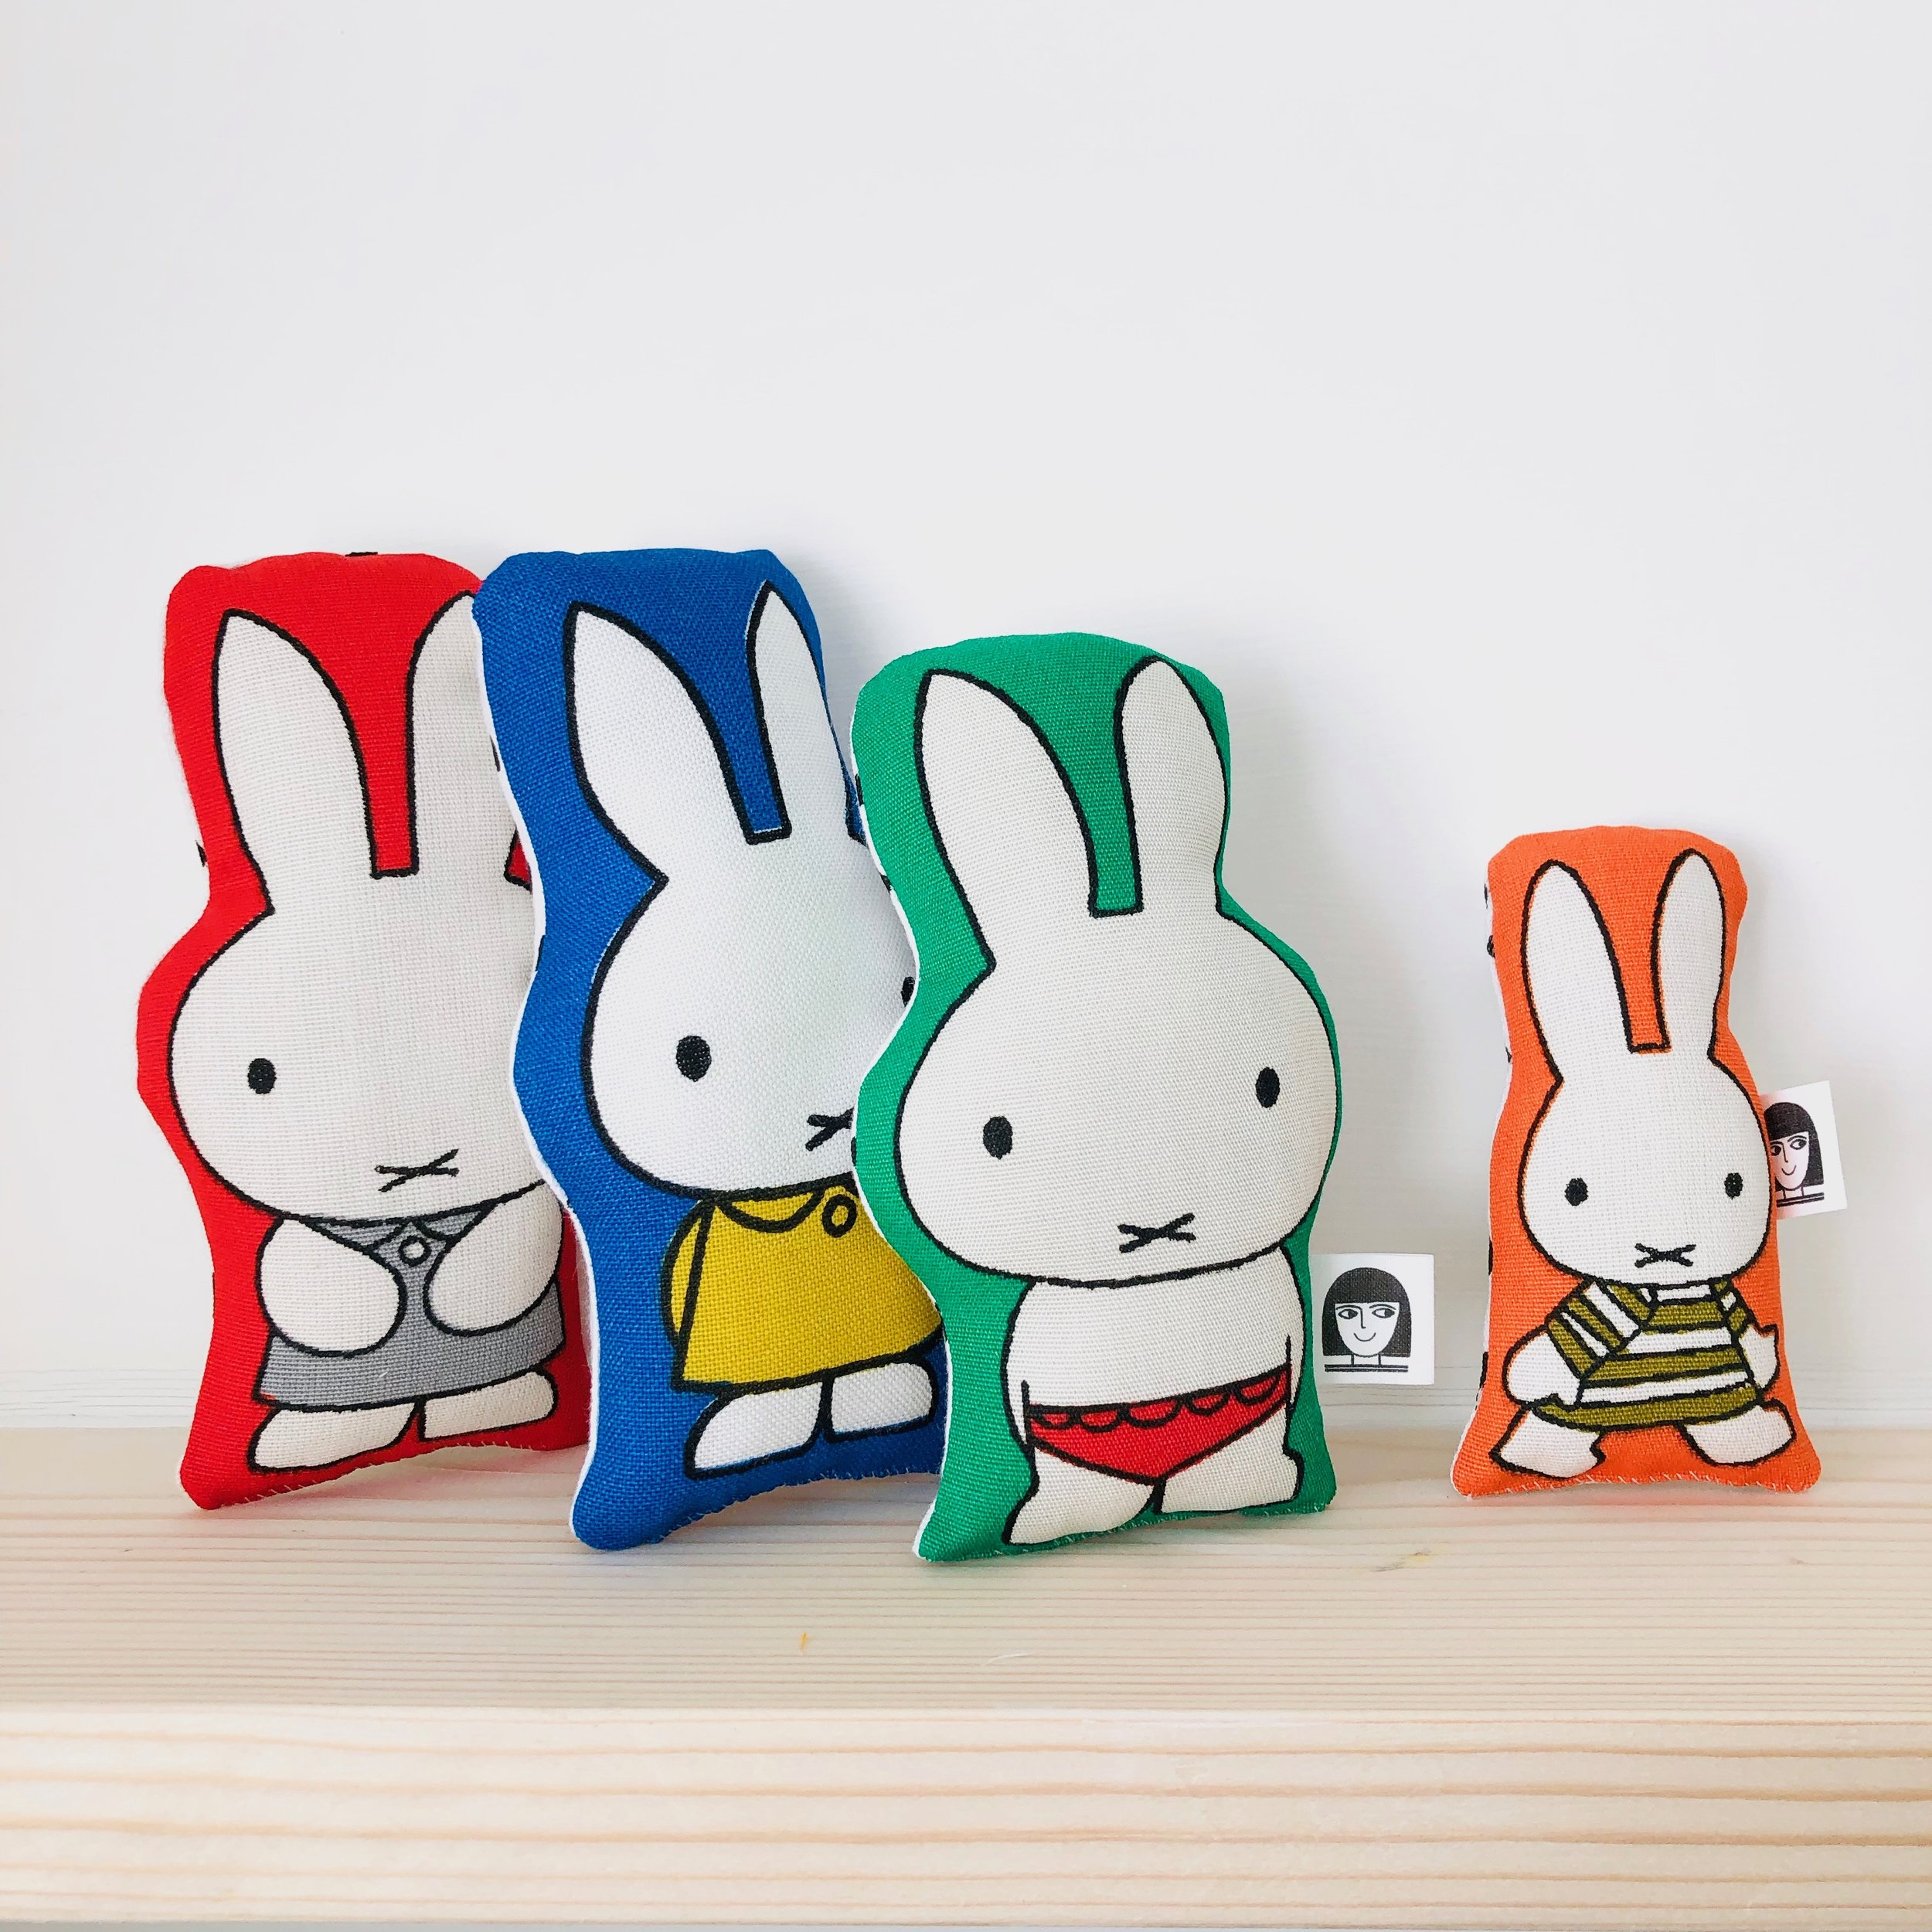 Handmade Miffy toys from vintage Dick Bruna fabric